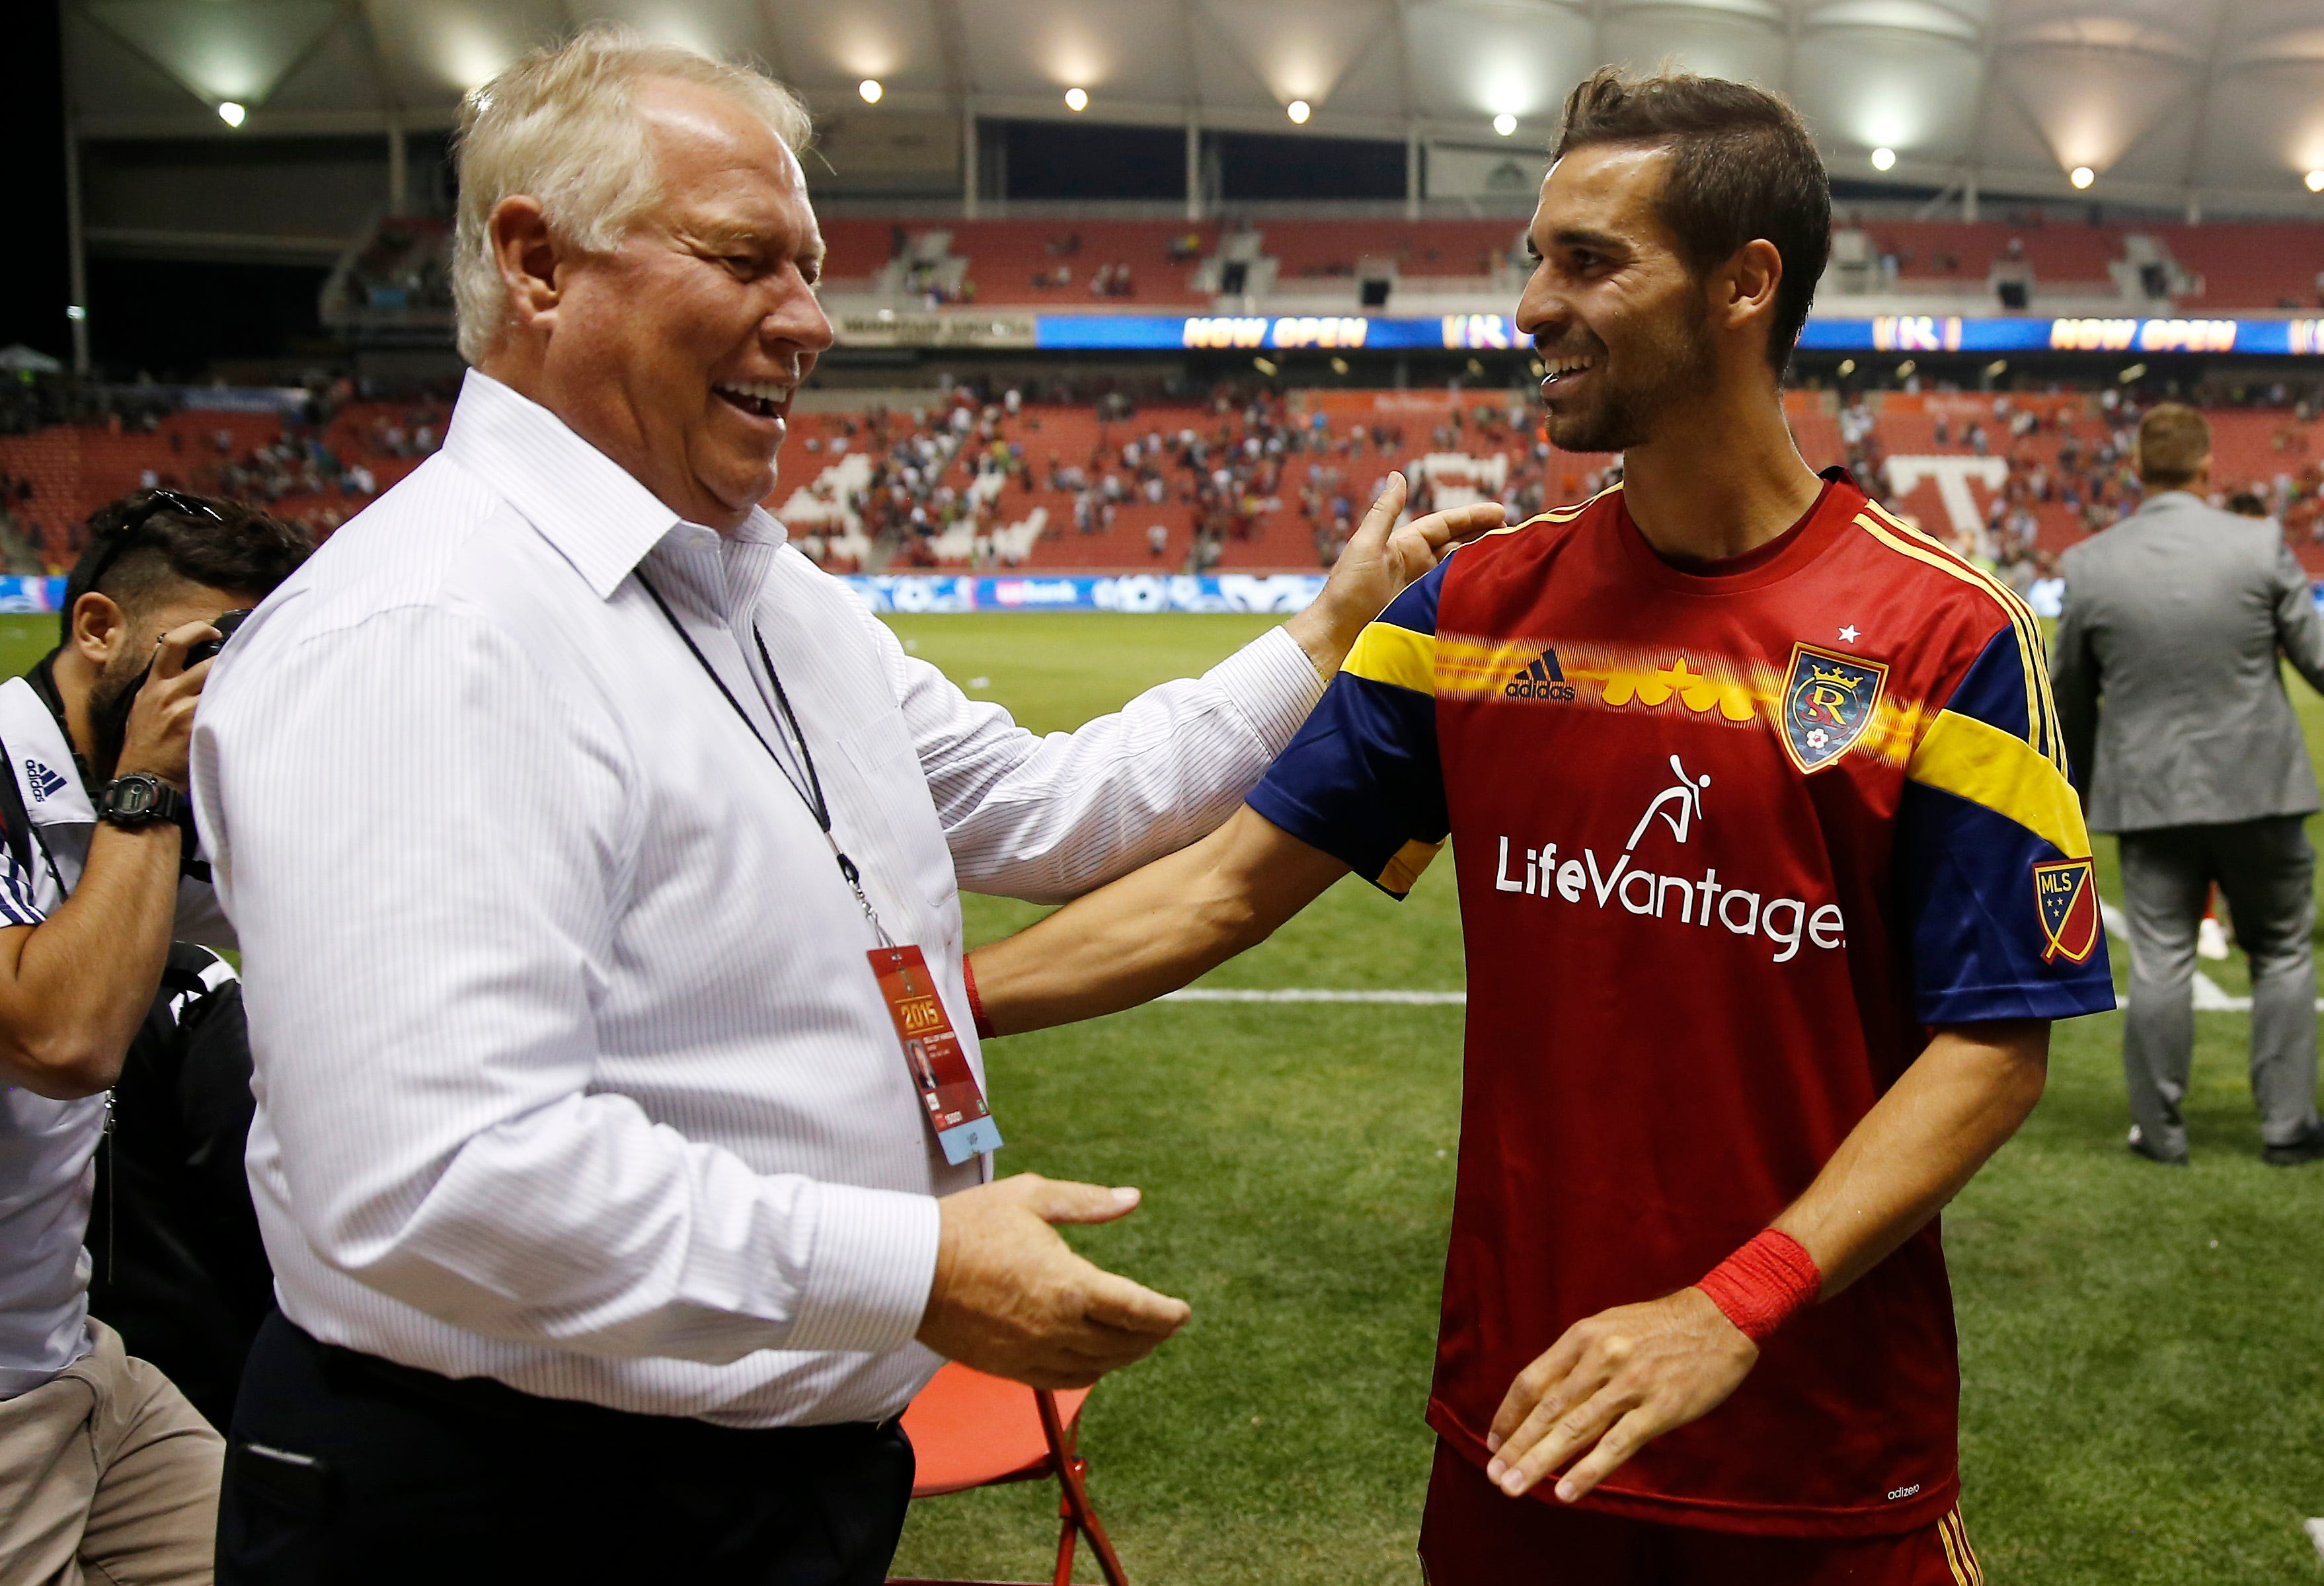 Real Salt Lake owner Dell Loy Hansen says players' activism makes him not want to invest in team